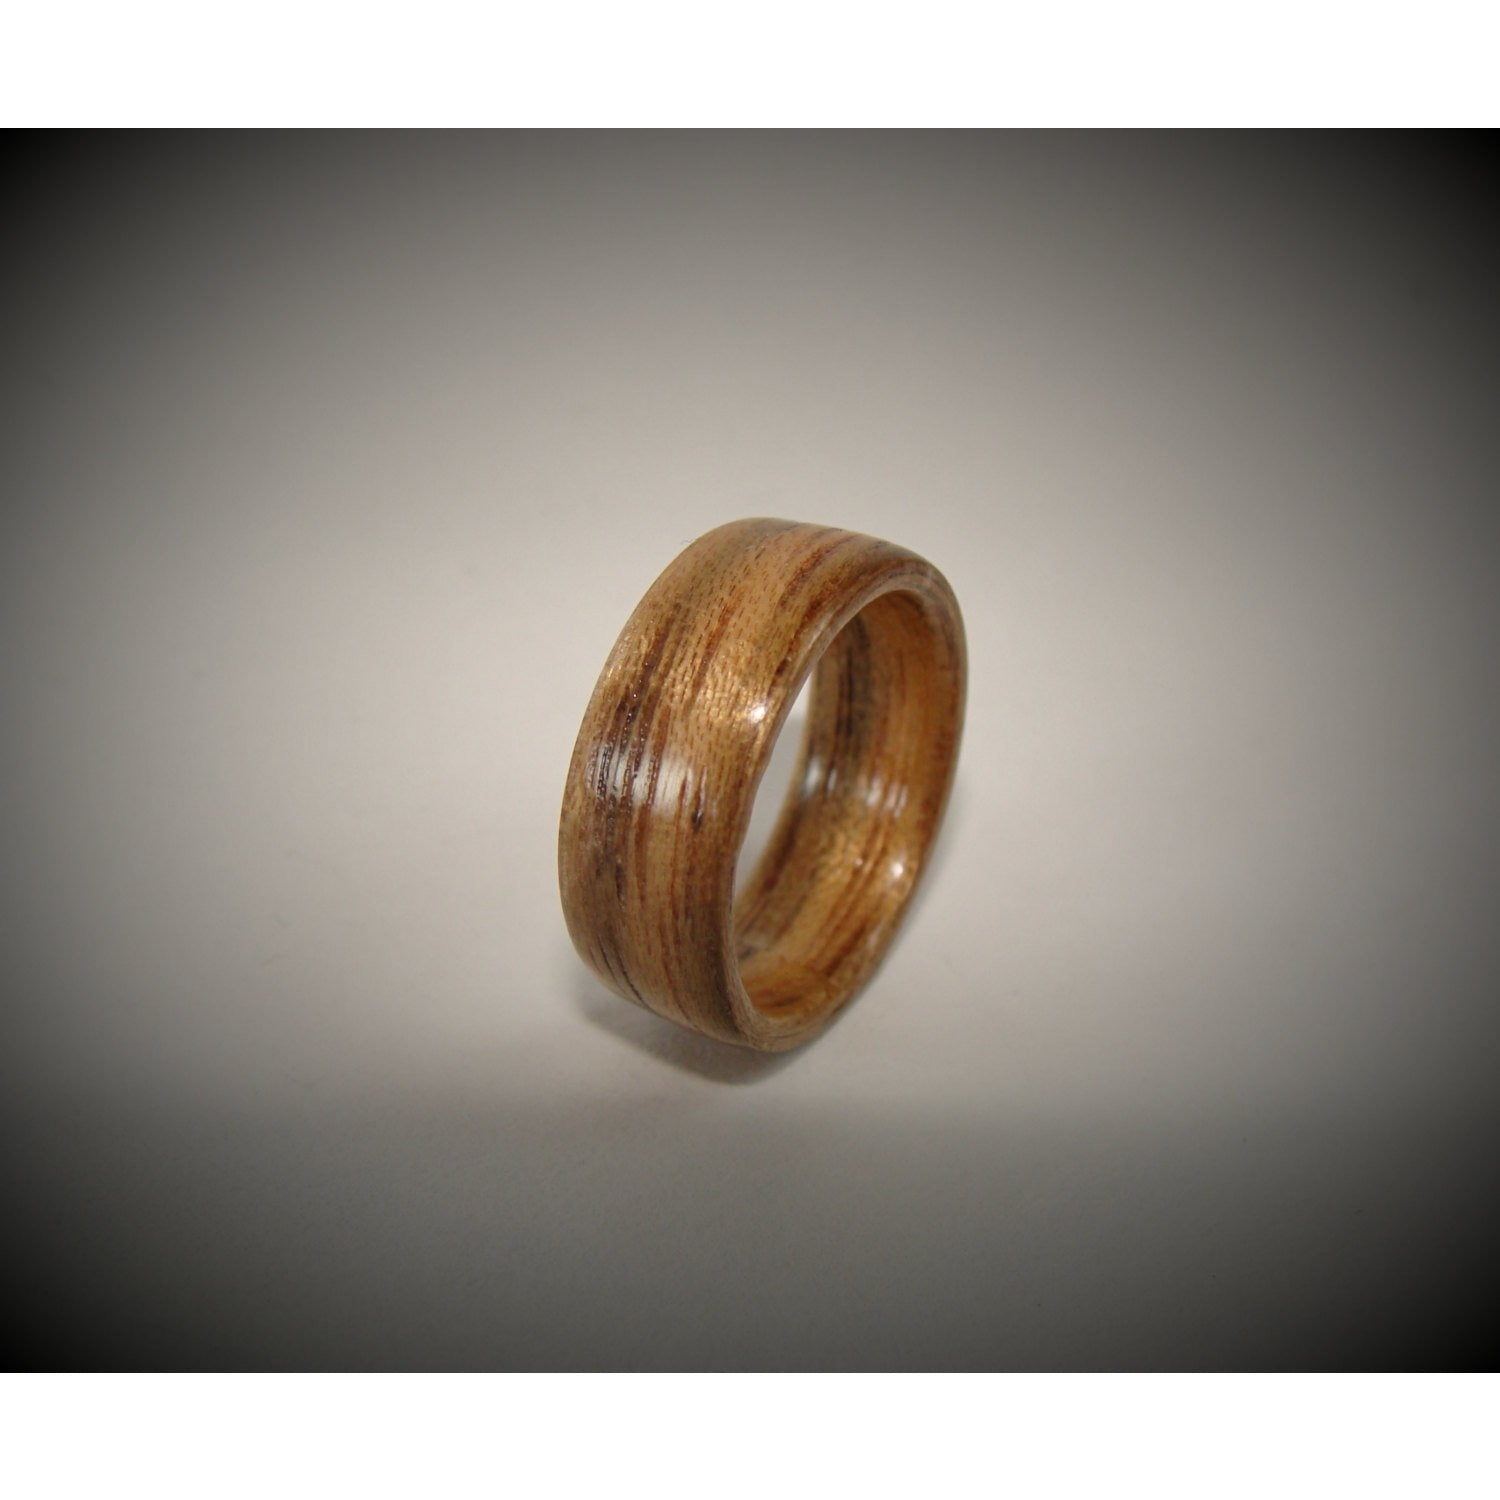 Paldao Bentwood Wood Ring - Art and Soule